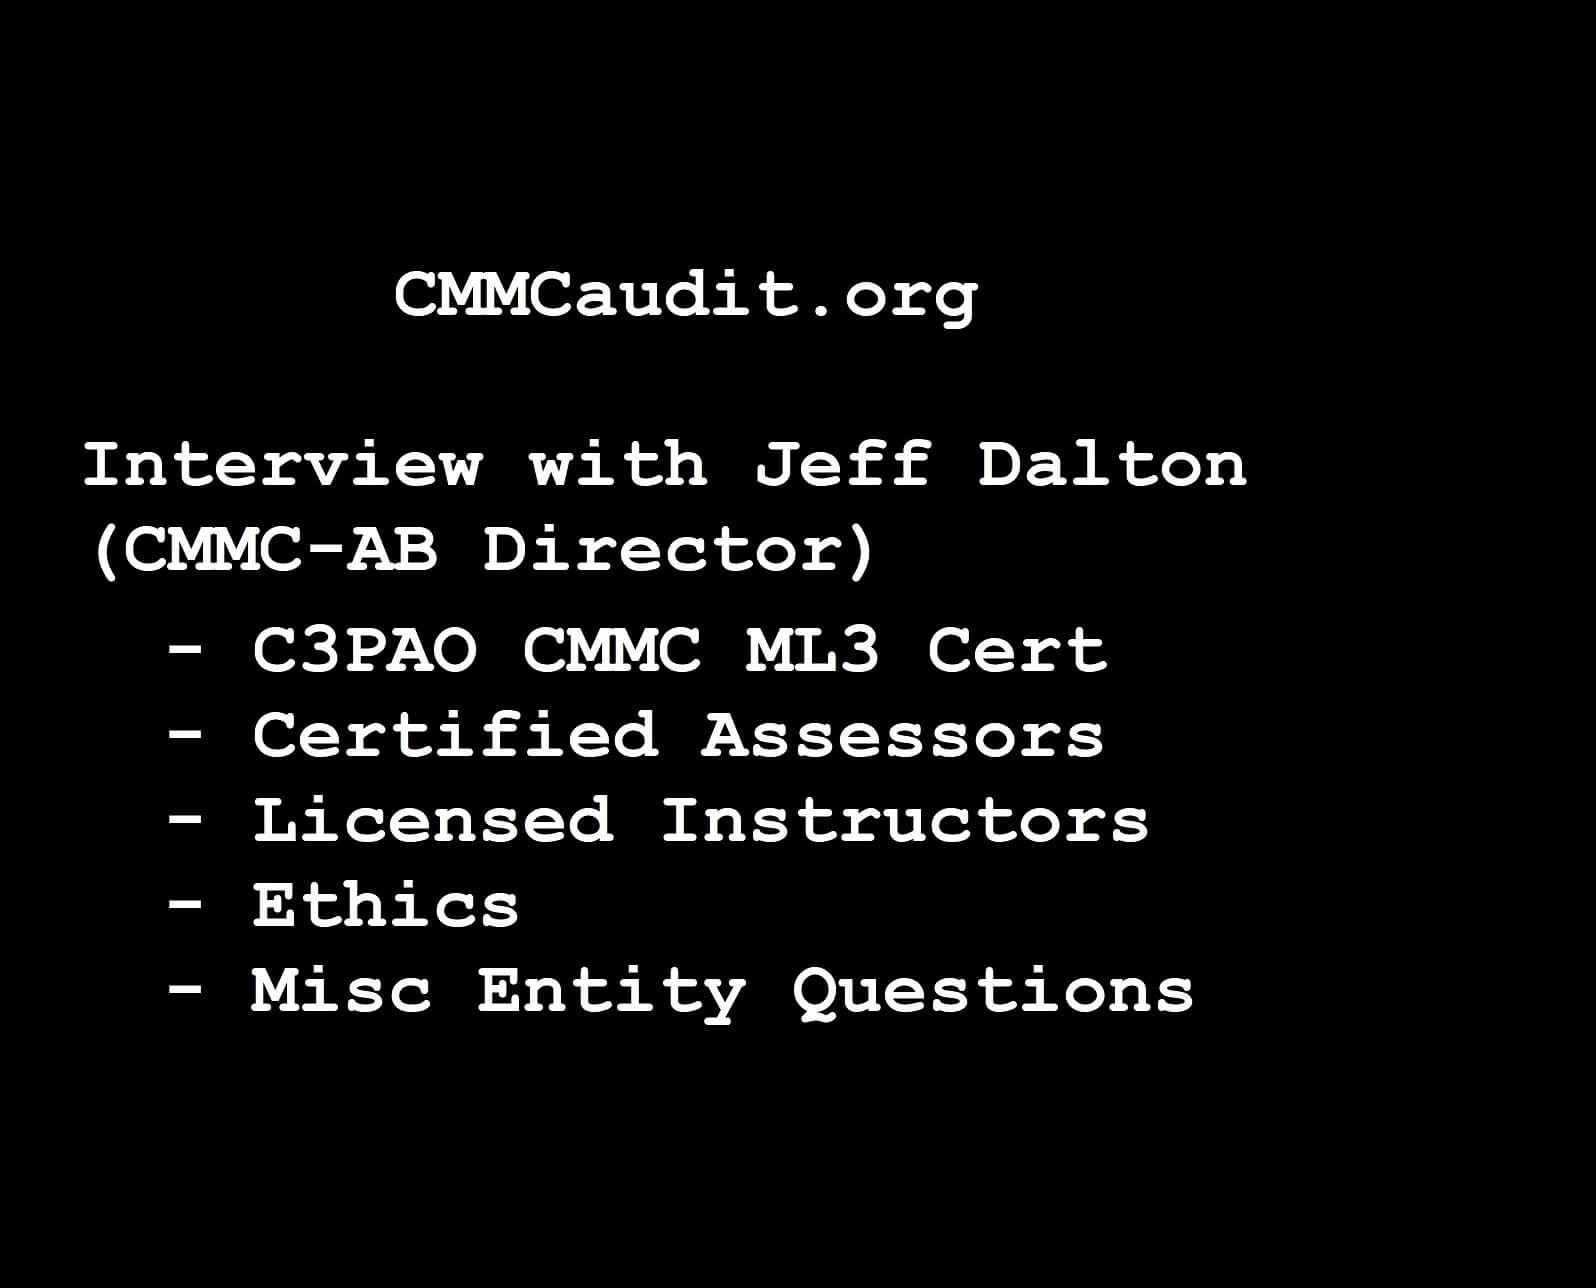 Picture of CMMCaudit.org interview #2 with jeff Dalton, CMMC-AB Director. On the topics of C3PAO CMMC ML3 cert, Certified Assessors, Licensed Instructors, Ethics, and Misc Entity Questions.